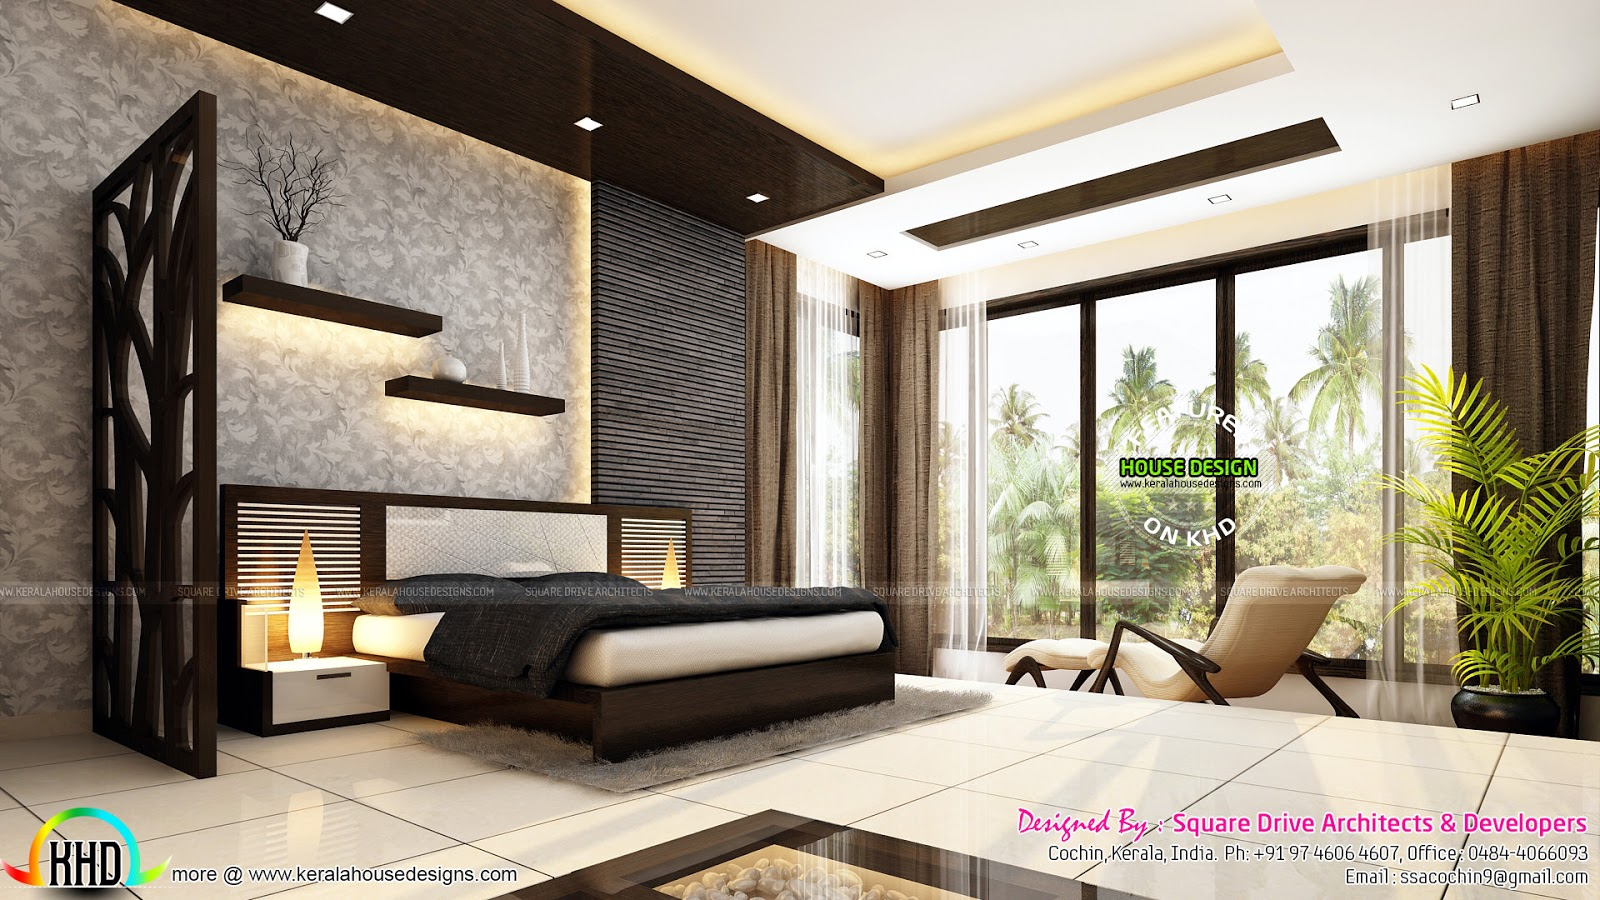 Very beautiful modern interior designs kerala home Home plans with interior pictures